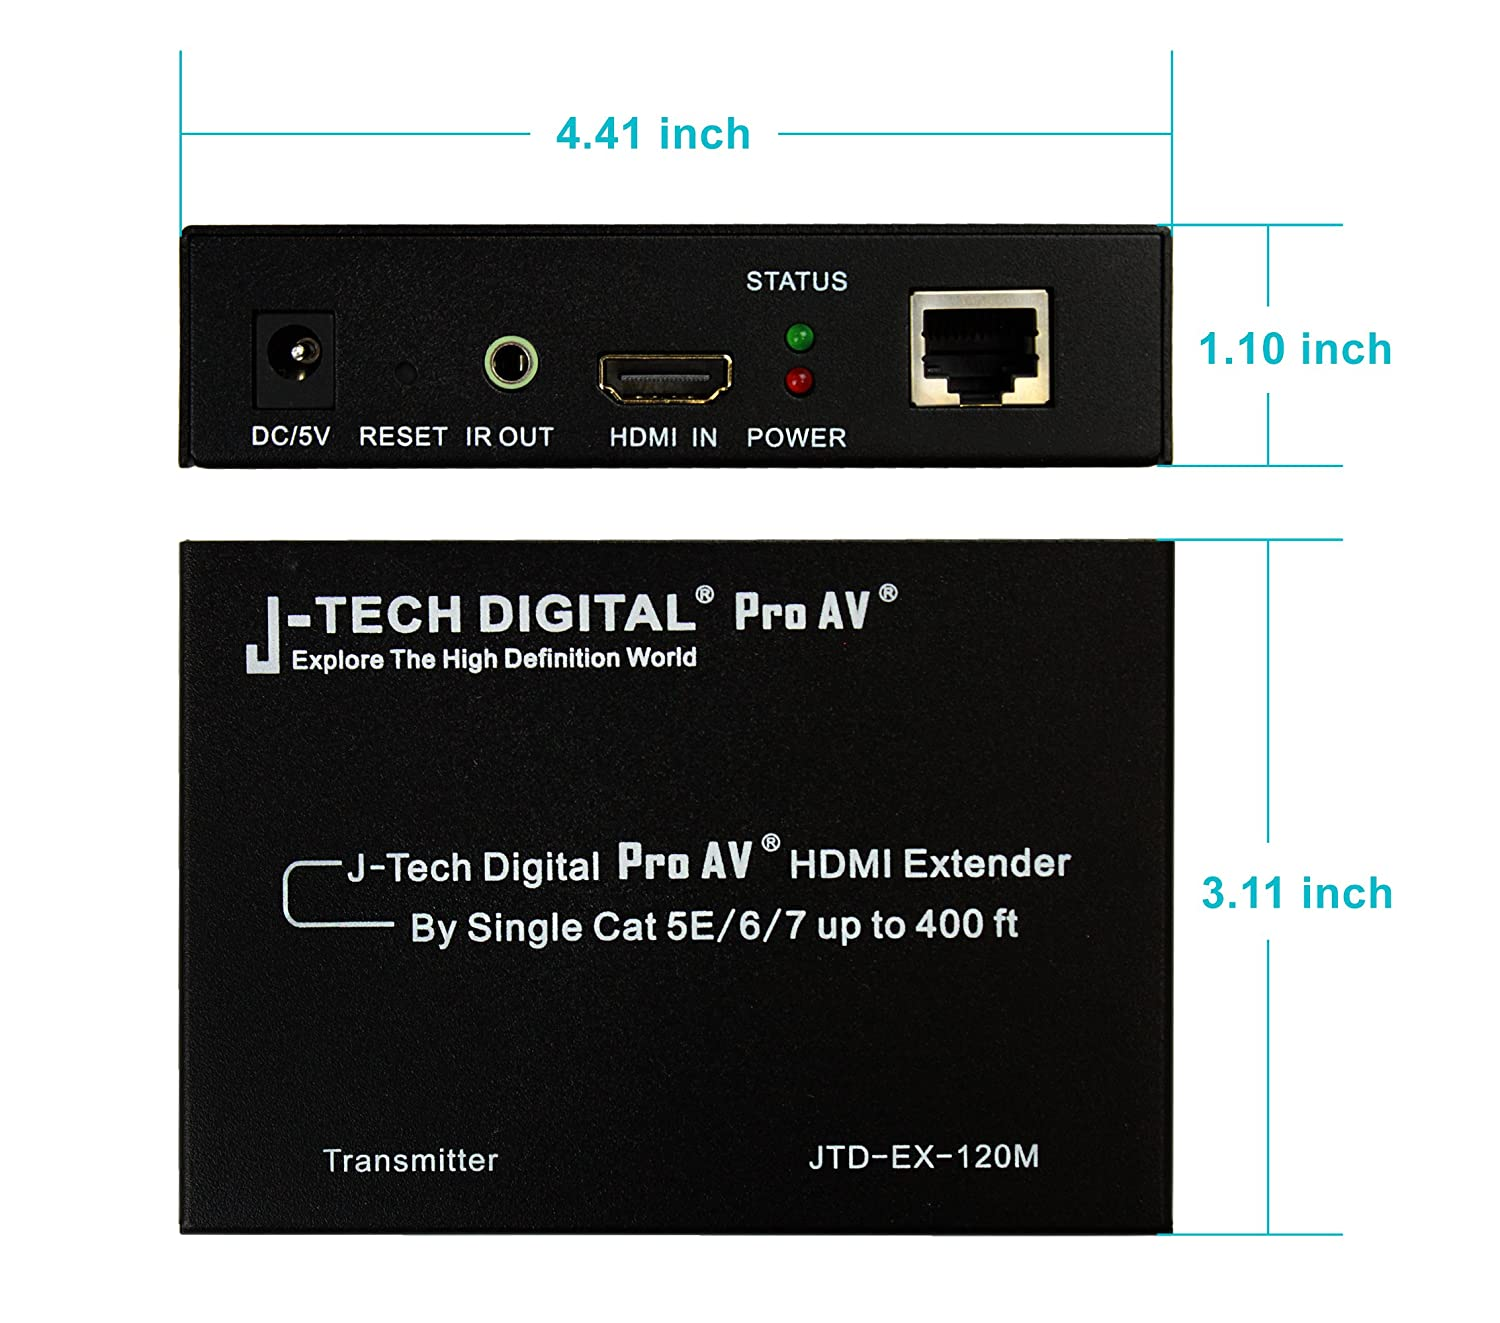 J Tech Digital Proav Hdmi Extender Over Tcp Ip Ethernet Wiring On Cable Systems Cat5 Cat5e Cat6 Cat6e Cat7 What Earth Single 1080p With Ir Remote Up To 400 Ft Electronics